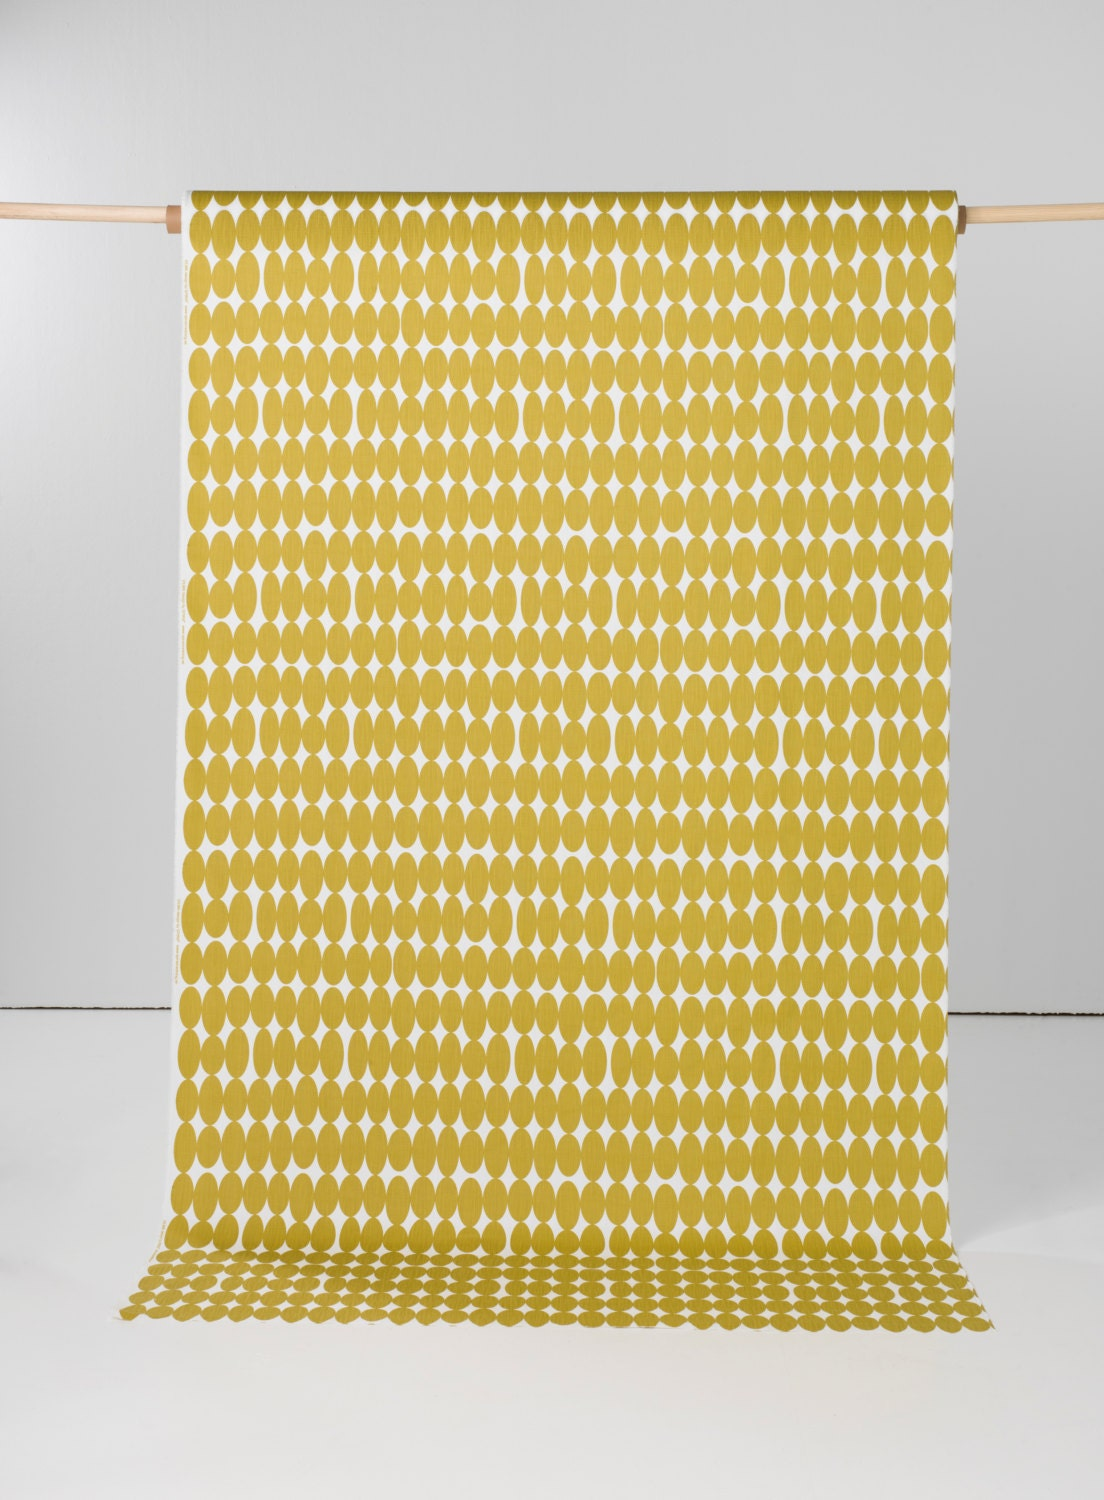 One Metre Left Yellow Fabric Geometric Fabric Retro Fabric Home Decor Fabric Extra Wide Fabric